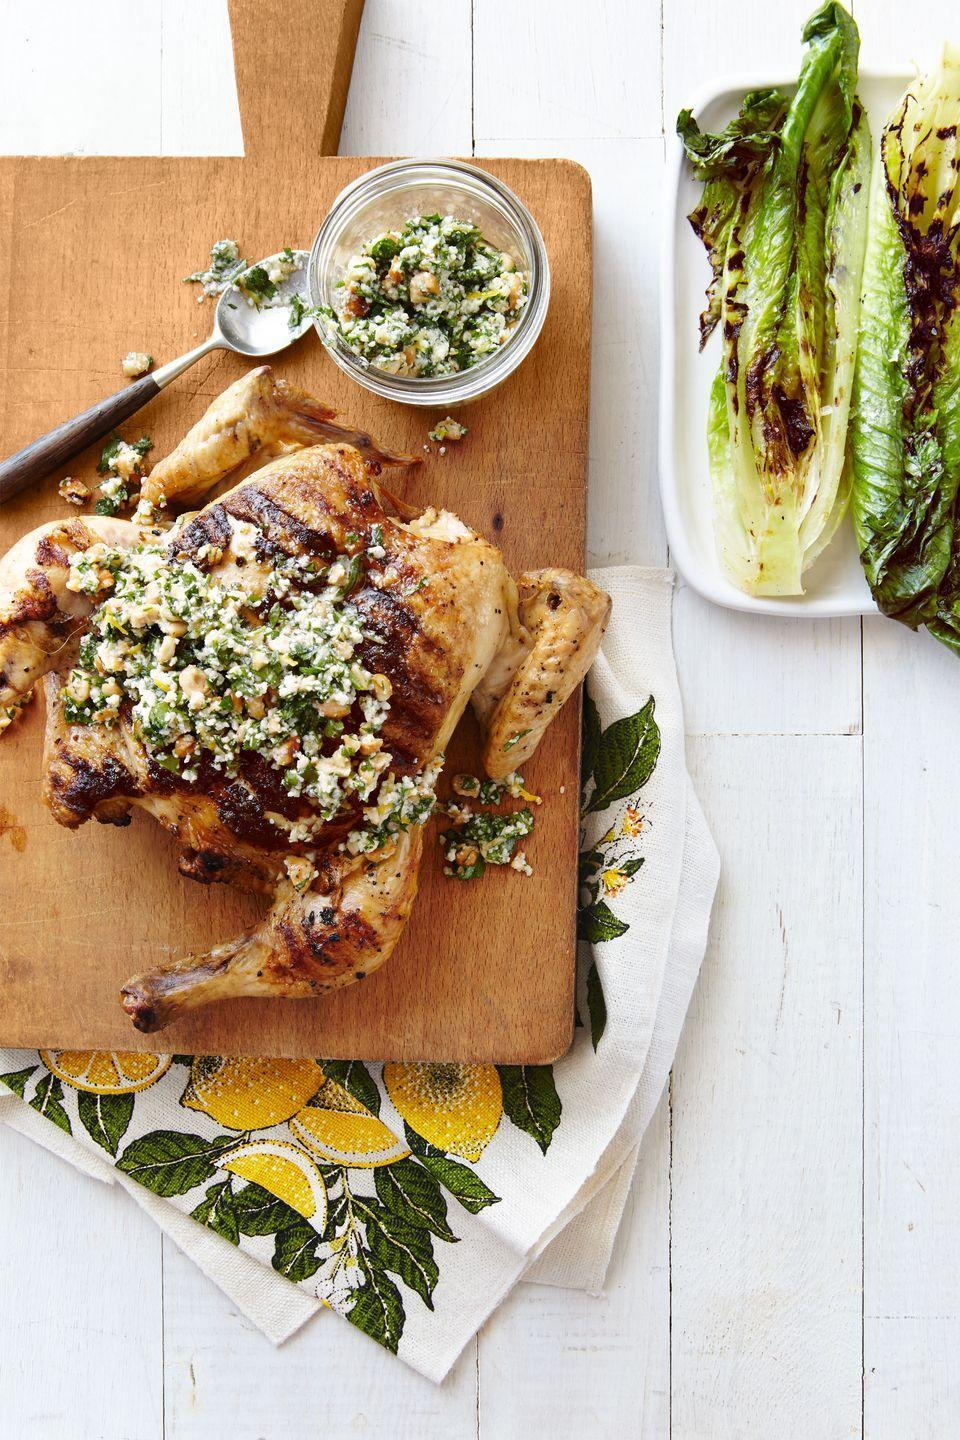 "<p>This grilled chicken deserves a spot in your weekly dinner rotation this spring.</p><p><a href=""https://www.countryliving.com/food-drinks/recipes/a38079/flattened-chicken-and-grilled-romaine-with-parsley-lemon-sauce-recipe/"" rel=""nofollow noopener"" target=""_blank"" data-ylk=""slk:Get the recipe."" class=""link rapid-noclick-resp""><strong>Get the recipe.</strong></a></p>"